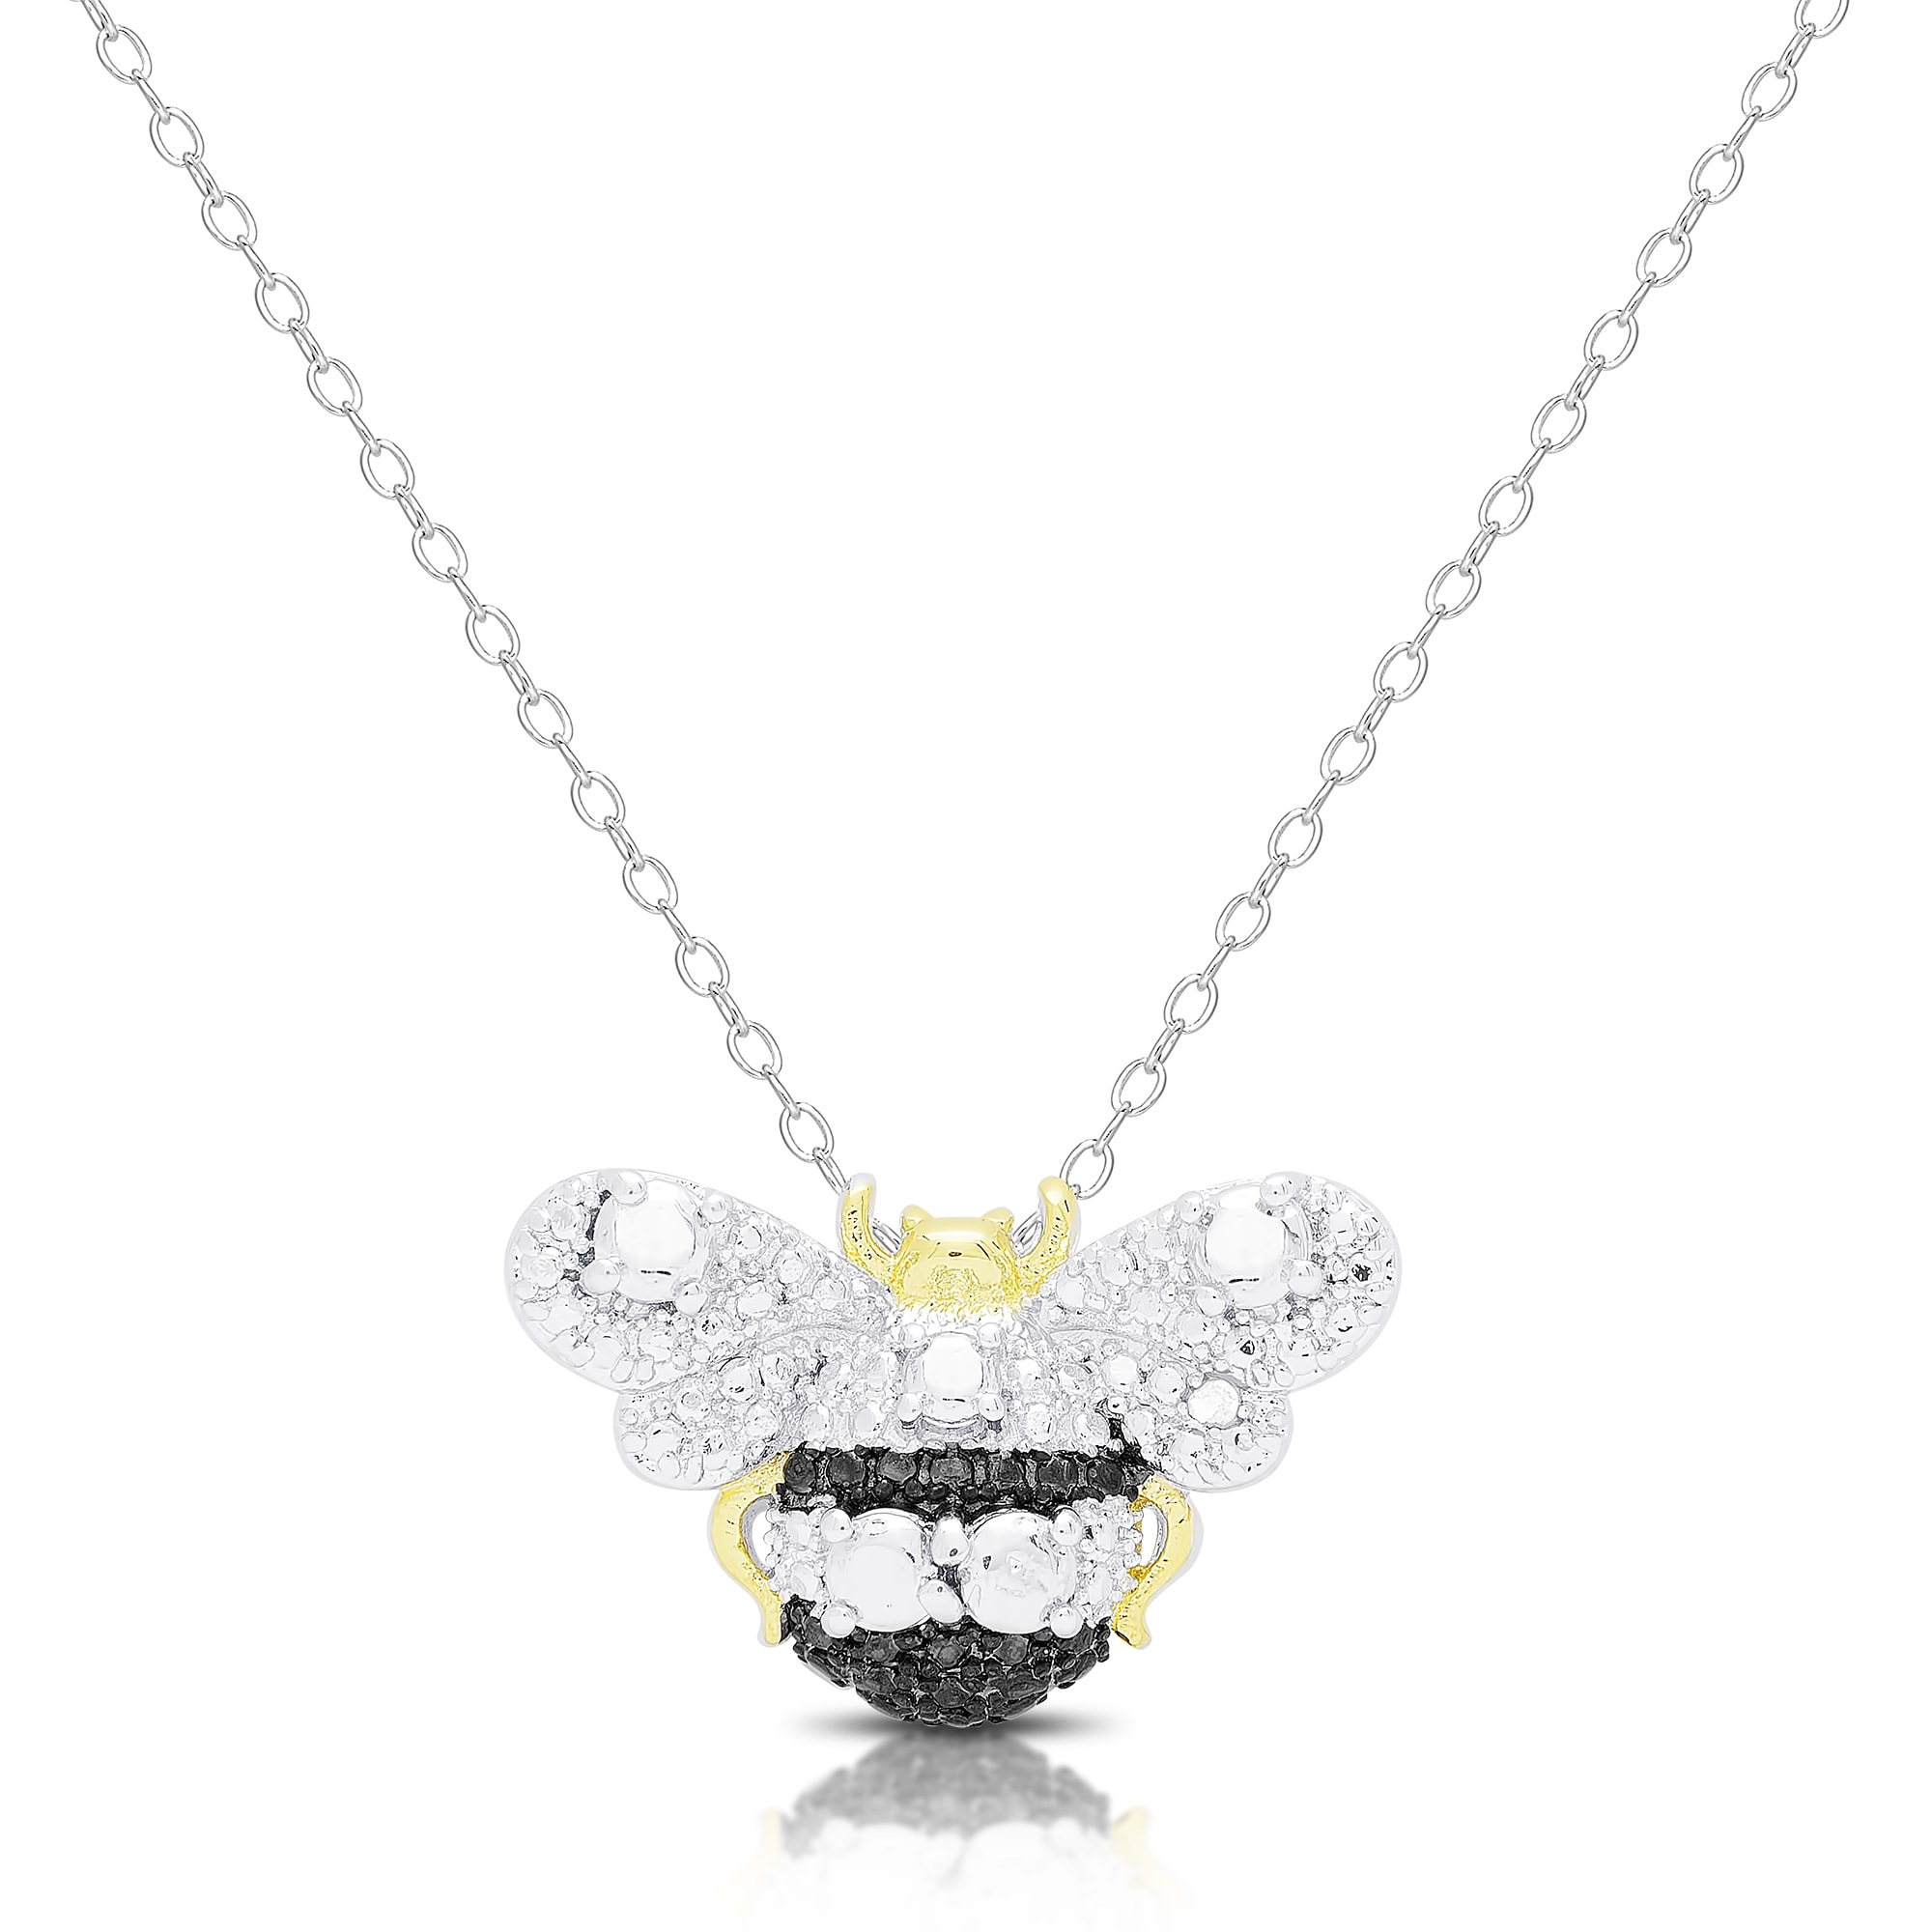 jewellery ted beelia baker pendant necklace bee bumble necklaces p